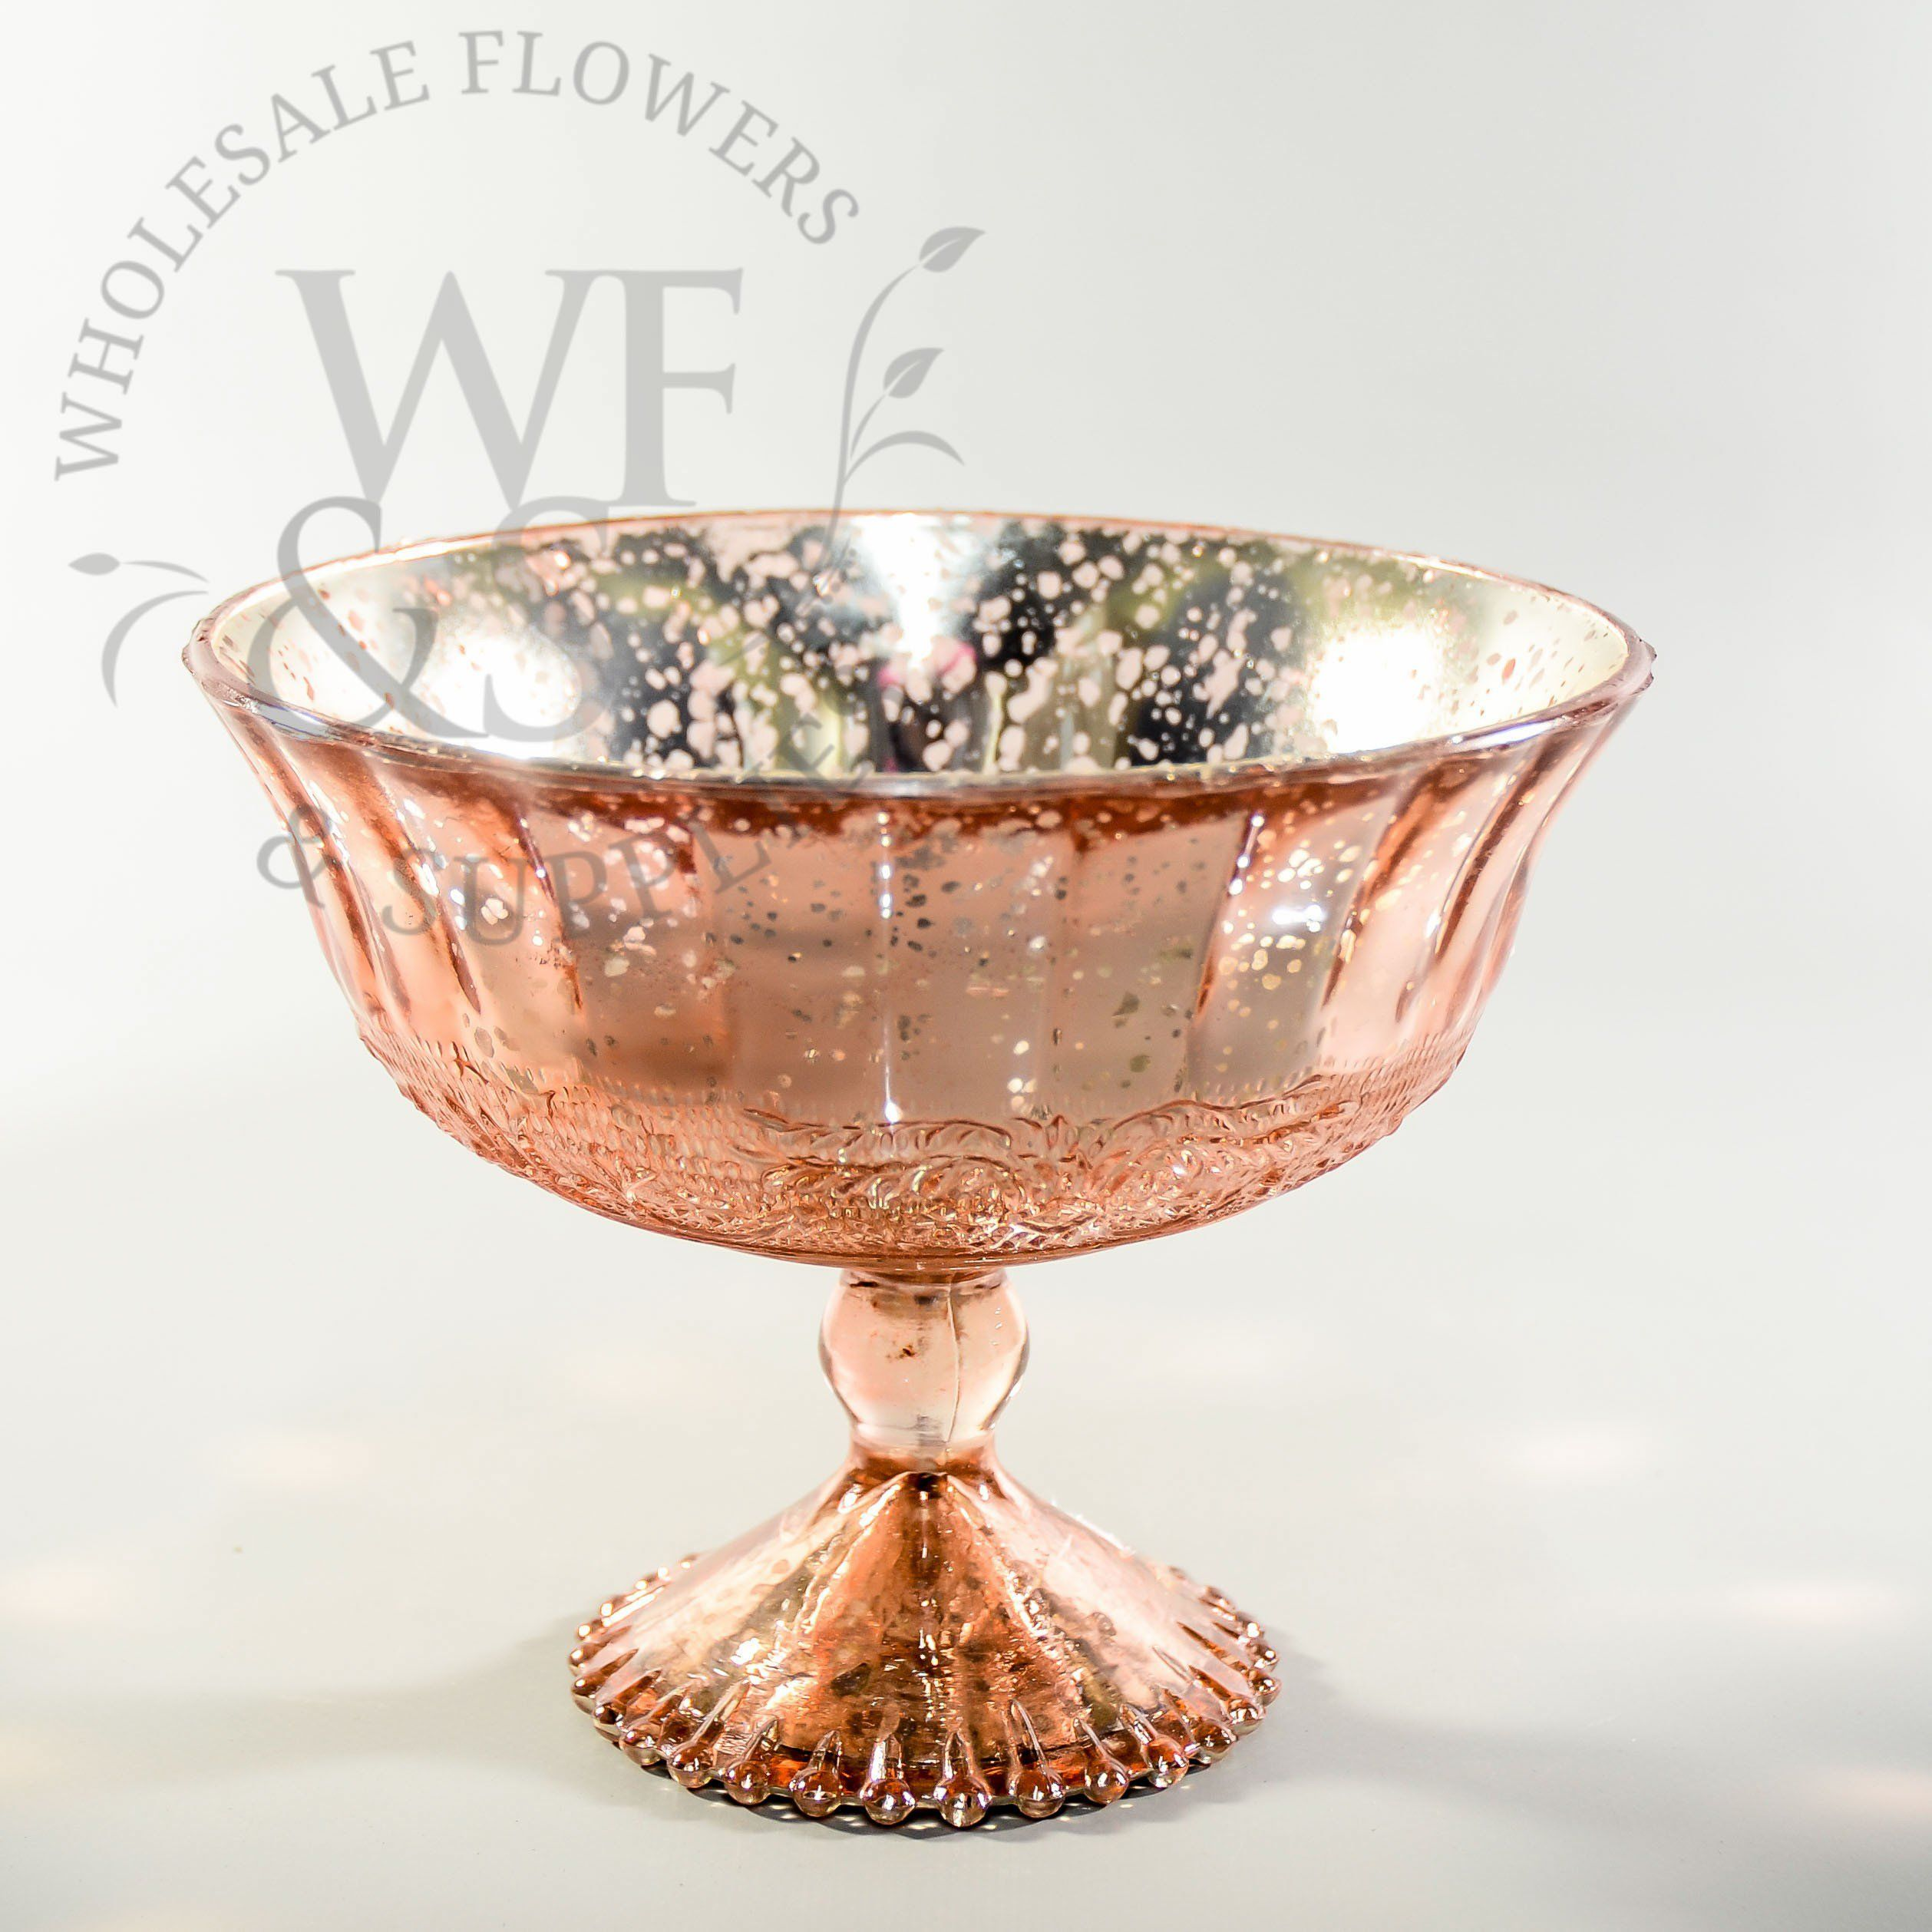 Glass pedestal vase in rose gold wholesaleflowersandsupplies glass pedestal vase rose gold wholesale flowers and supplies reviewsmspy